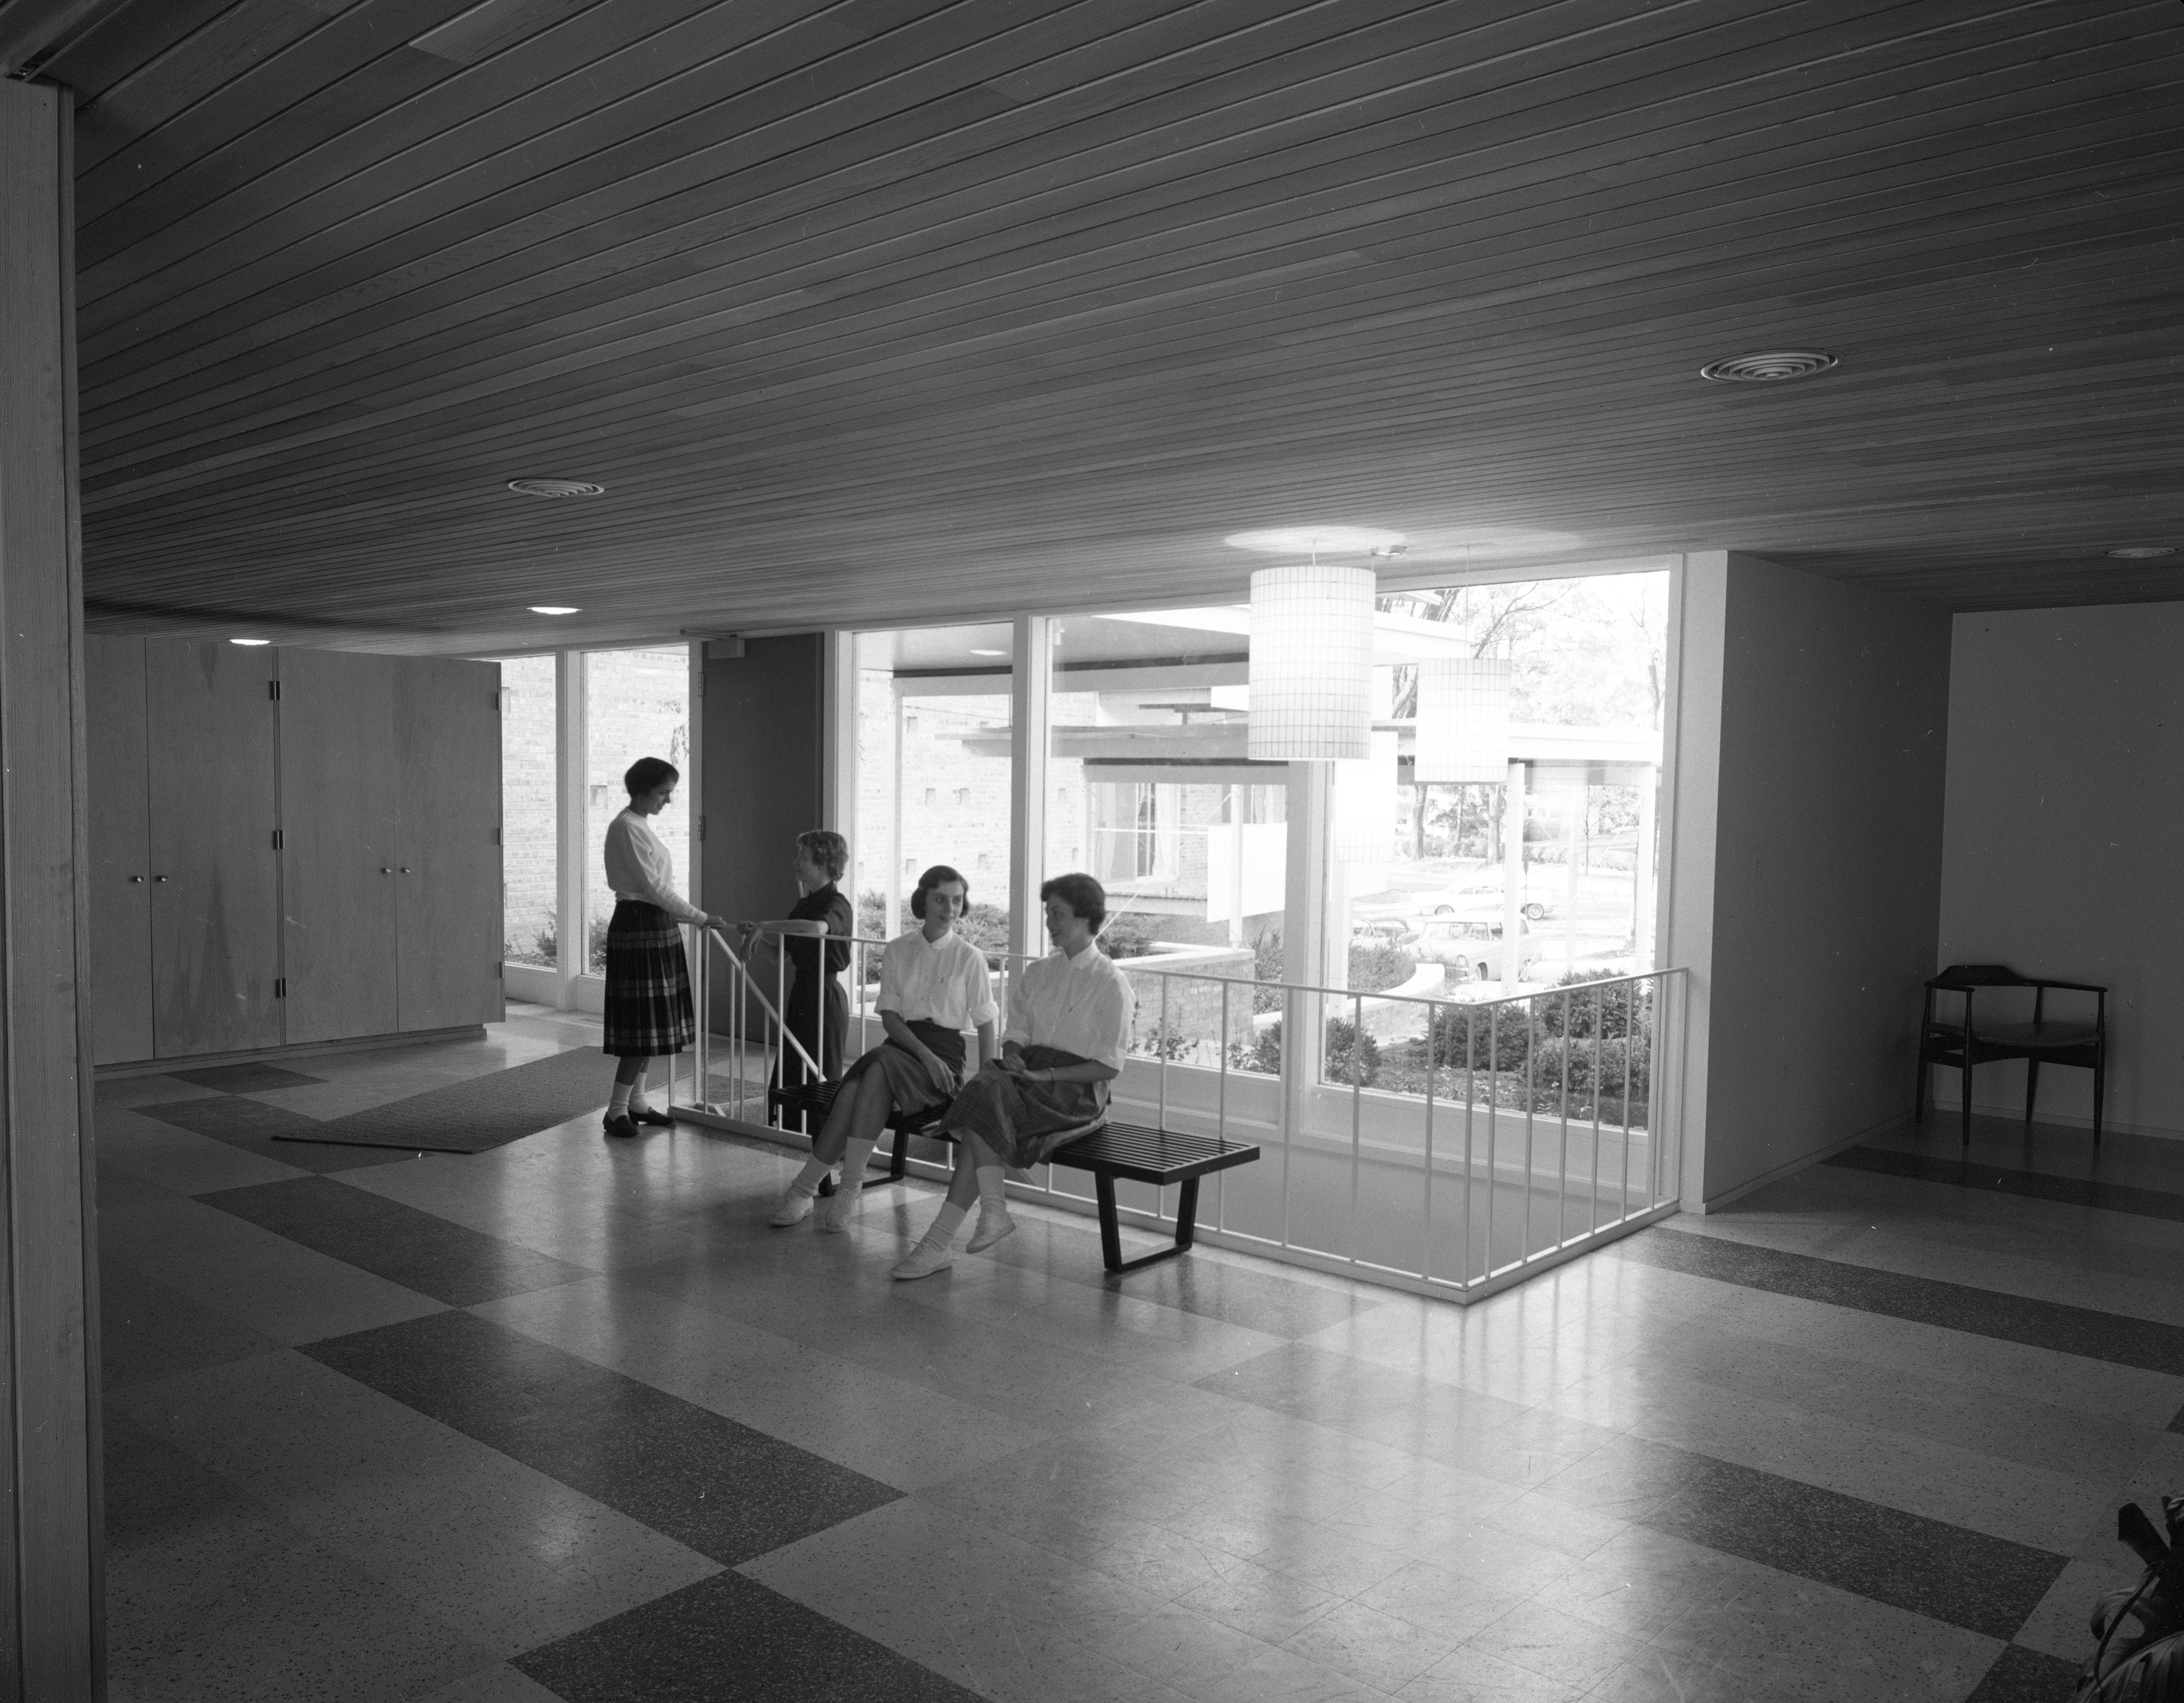 Lobby of New Delta Gamma Sorority House at 1800 Washtenaw Ave., October 1958 image